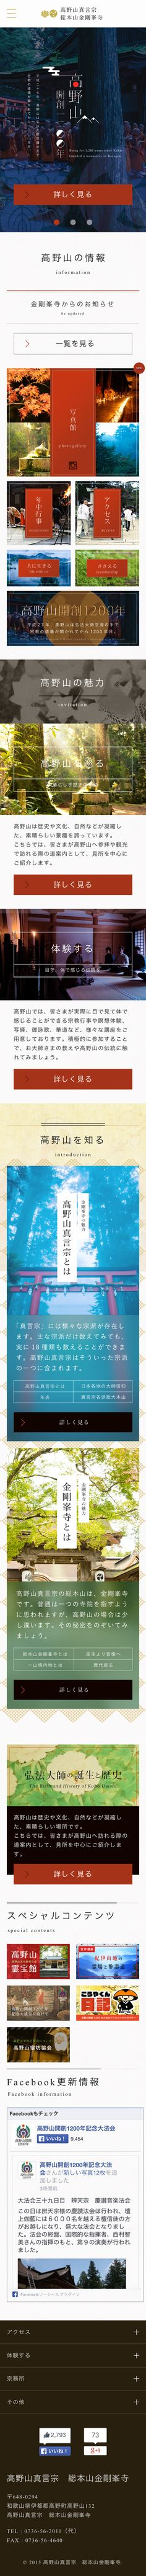 We don't speak any Japanese... But we're loving this website!d http://www.koyasan.or.jp/sp/